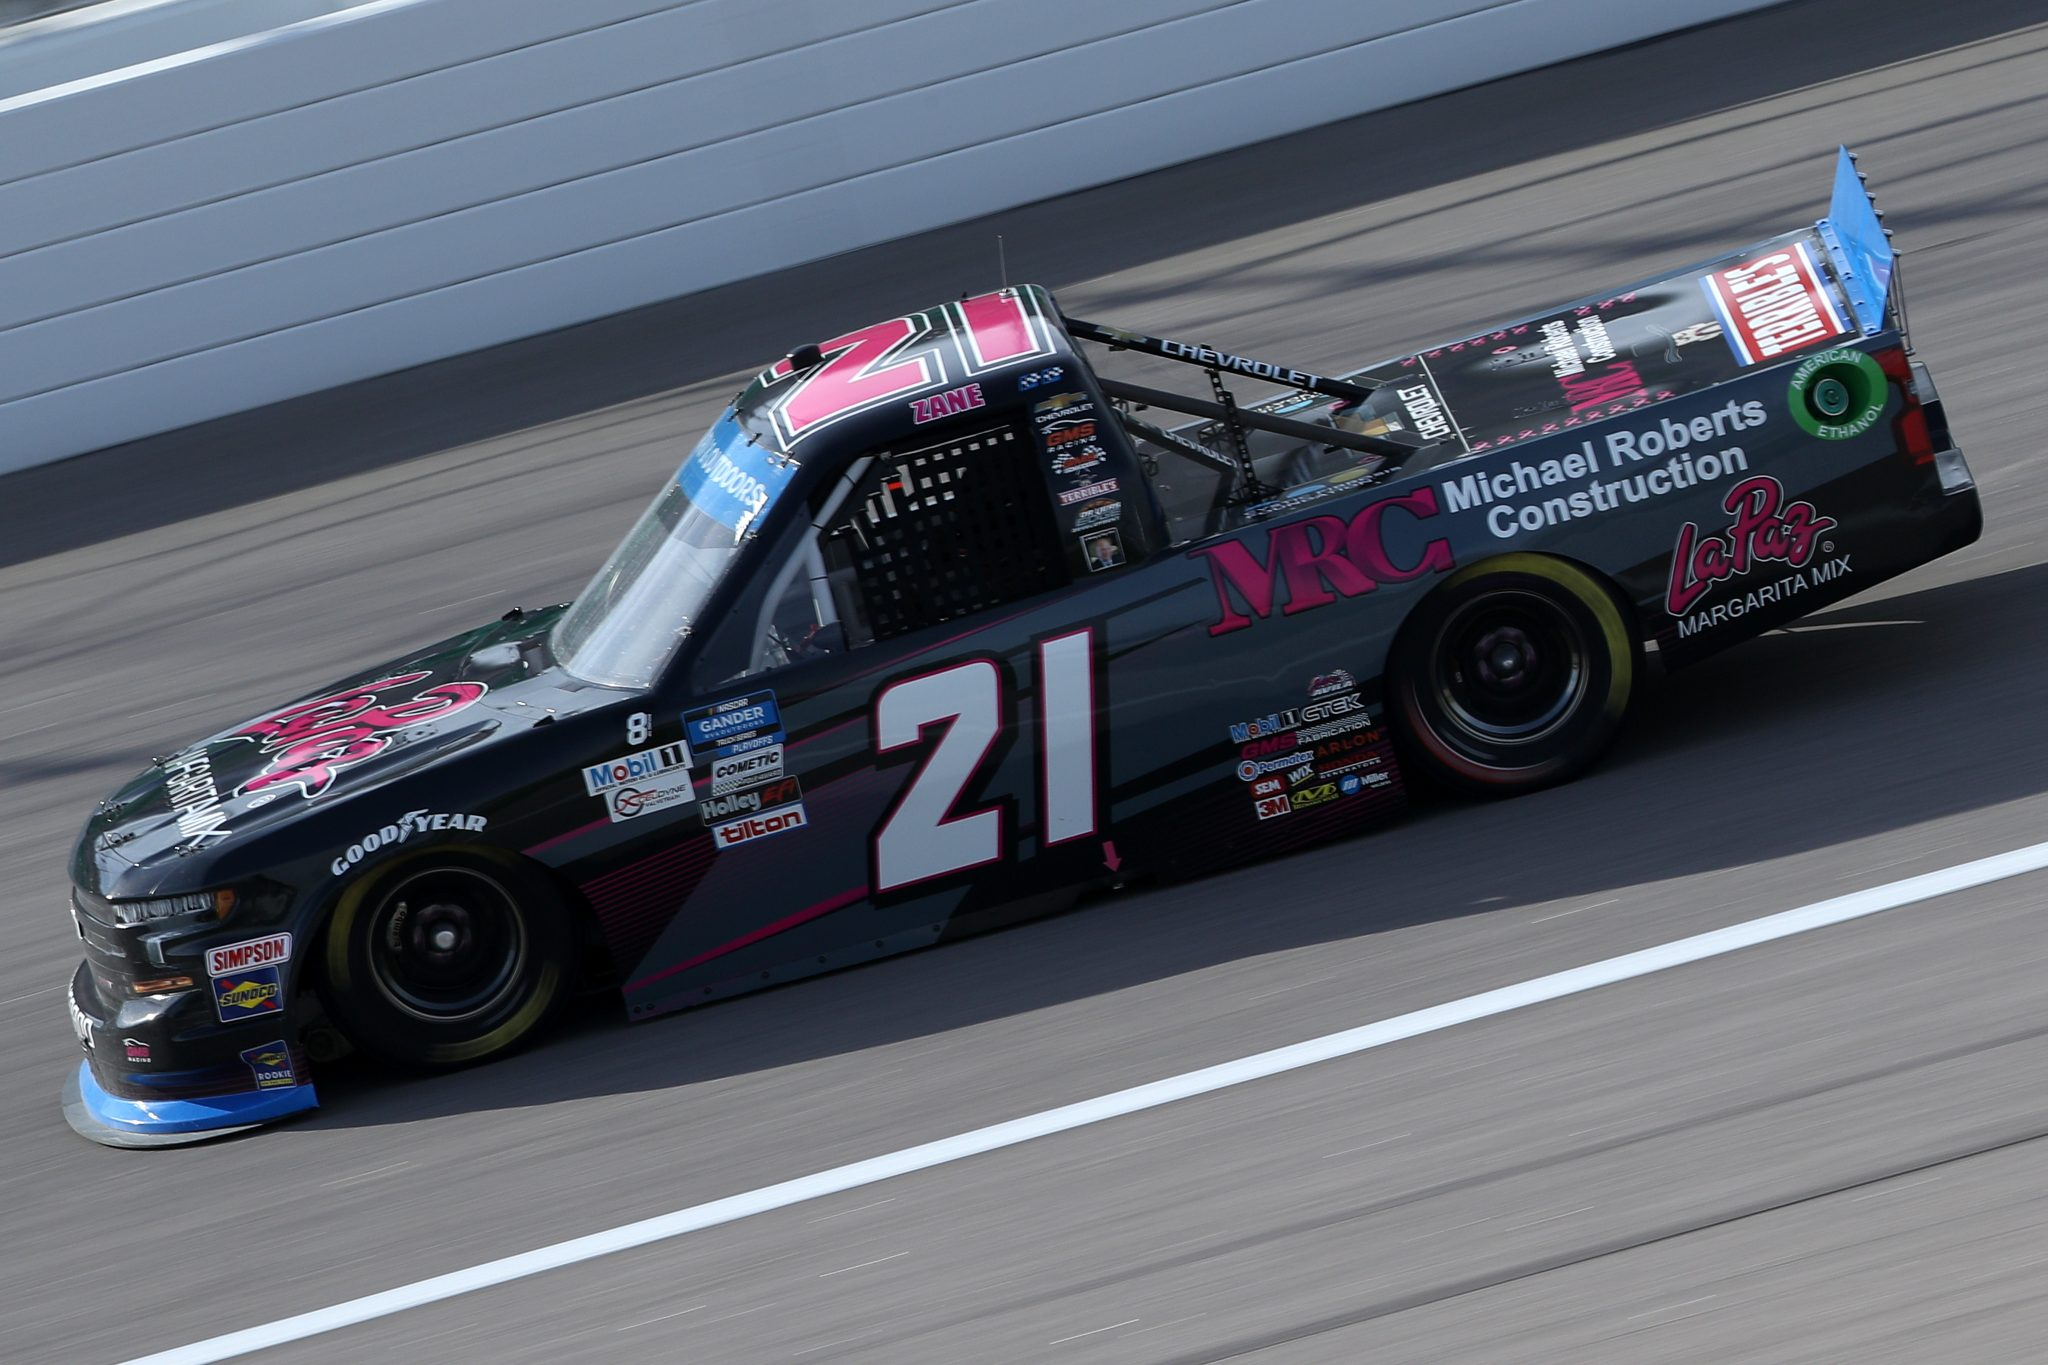 KANSAS CITY, KANSAS - OCTOBER 17: Zane Smith, driver of the #21 Chevrolet, drives during the NASCAR Gander RV & Outdoors Truck Series Clean Harbors 200at Kansas Speedway on October 17, 2020 in Kansas City, Kansas. (Photo by Chris Graythen/Getty Images) | Getty Images